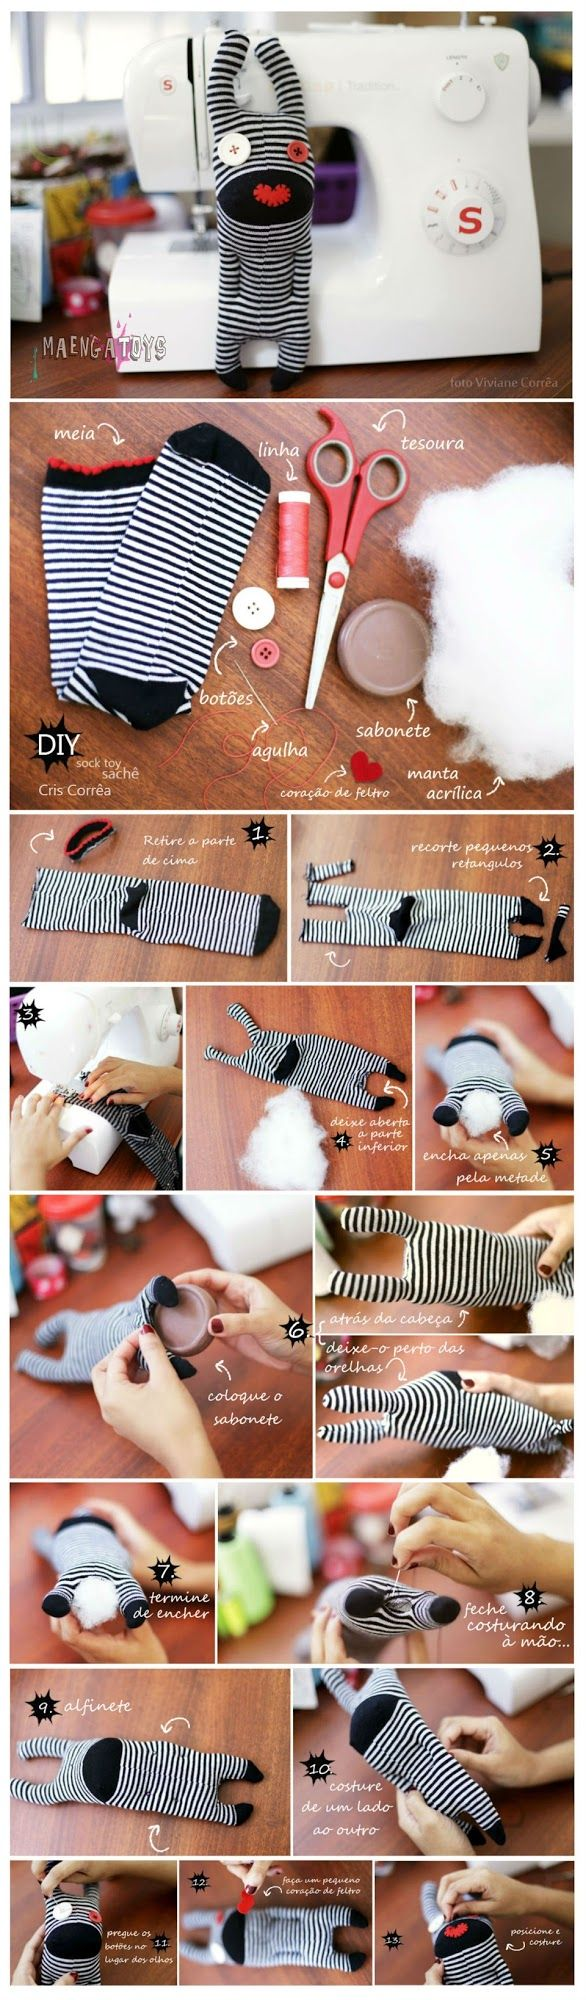 DIY / how to make a cuttle little monster from socks <3